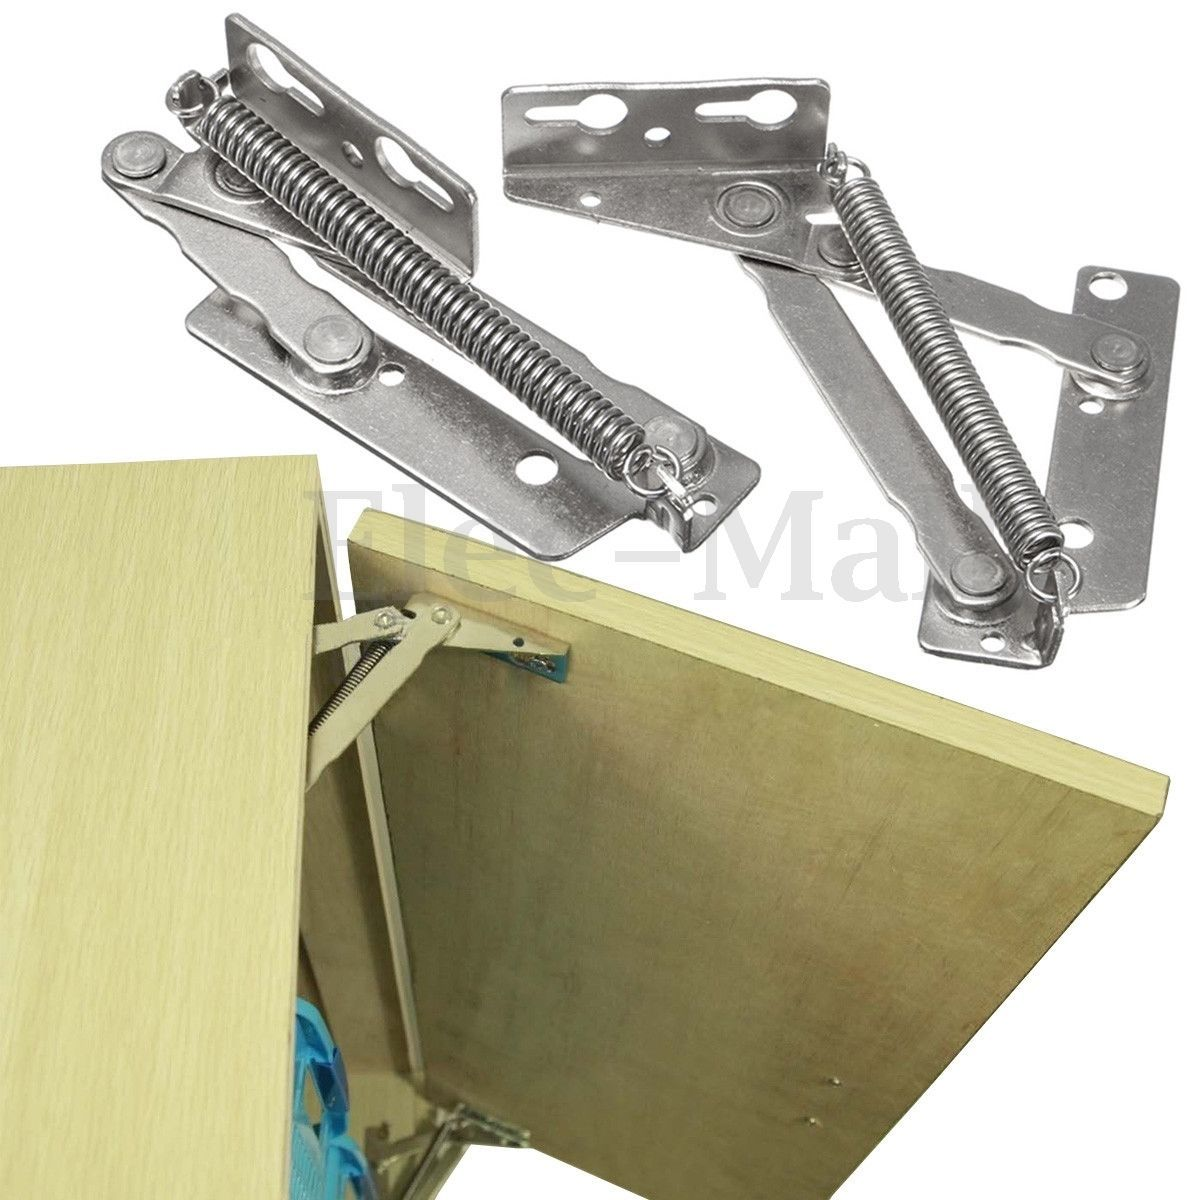 2x Cabinet Cupboard Closet Door Lift Up Stay Flap Top Support 80 Sprung Hinges Stainless Steel Kitchen Cabinets Kitchen Cabinets Door Hinges Steel Kitchen Cabinets